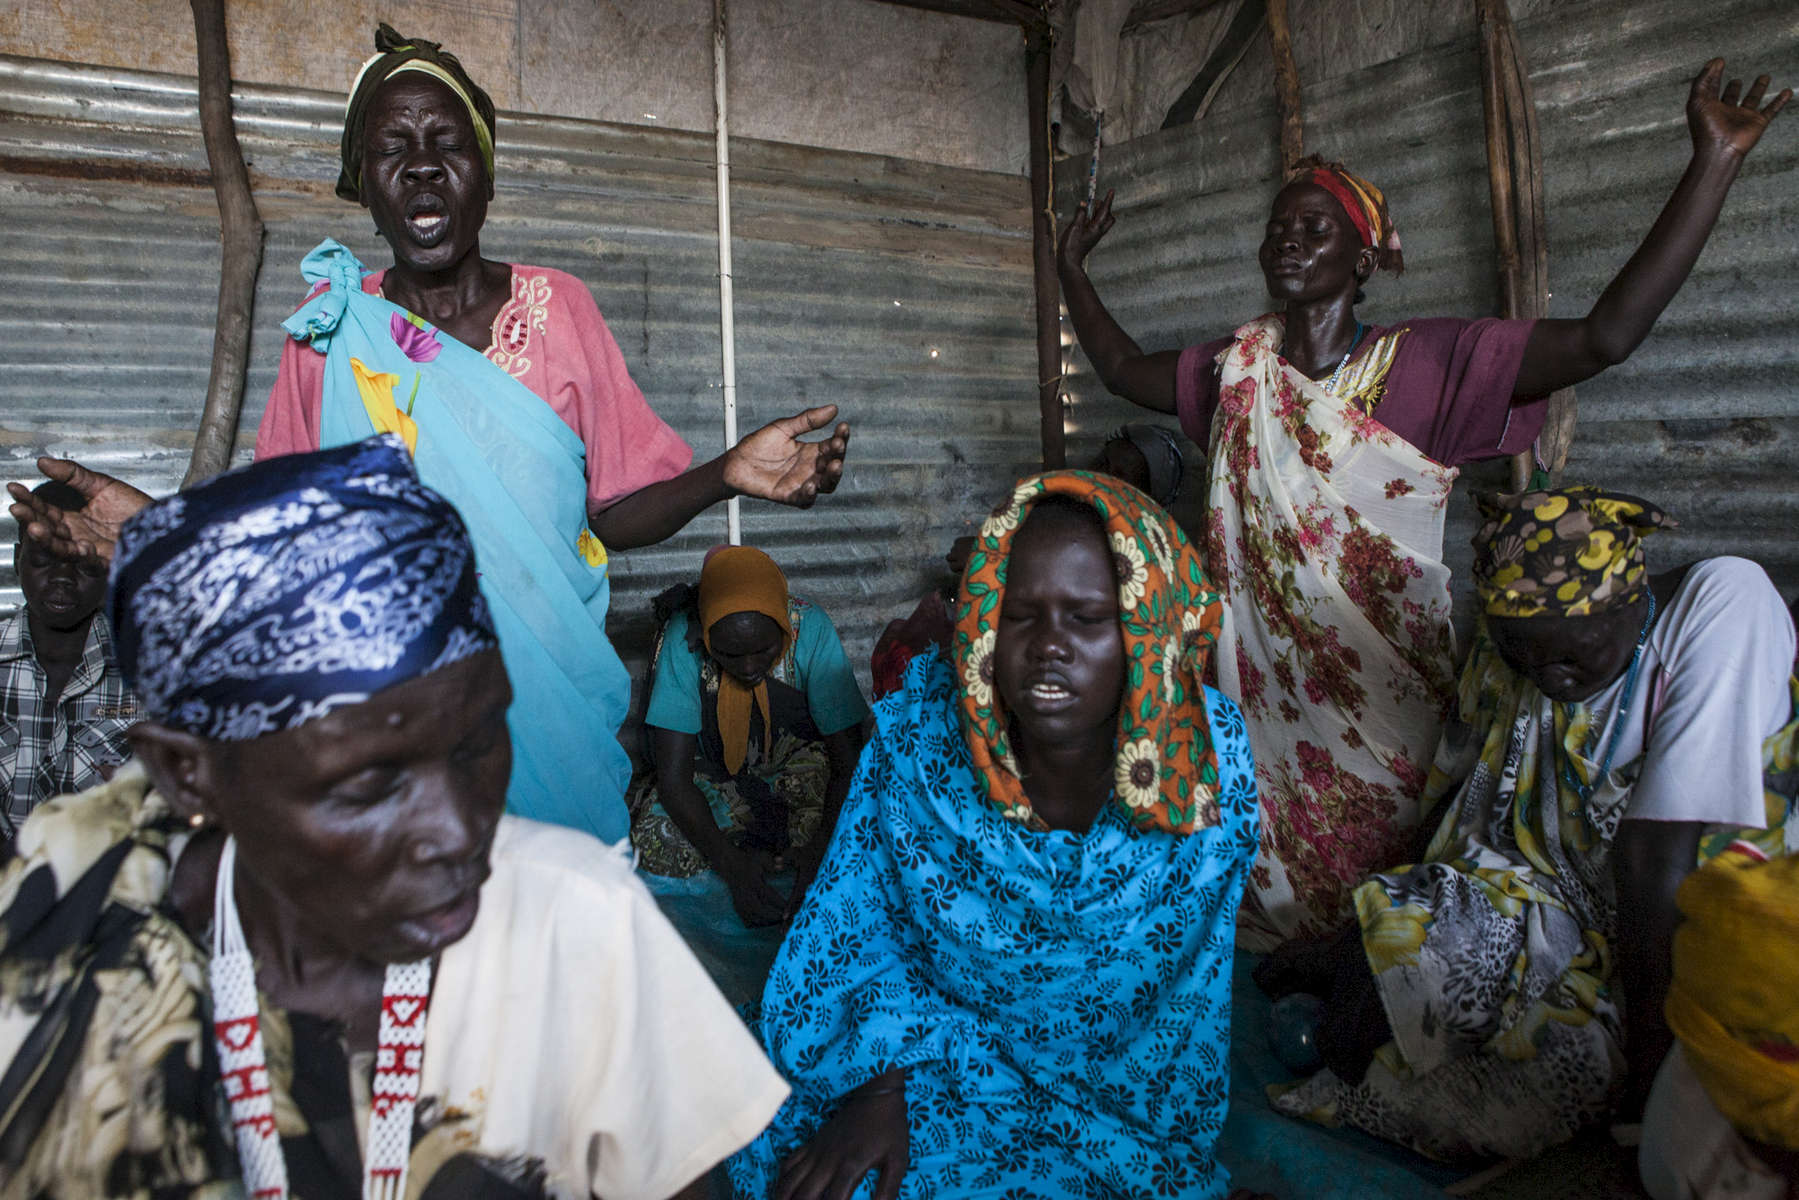 Women pray at a Pentecostal church in the Protection of Civilians (POC) site at the United Nations Mission in South Sudan (UNMISS) compound in Malakal, South Sudan on Saturday, July 9, 2016. The Malakal POC site houses over 32,000 displaced people mainly from the Shilluk and Nuer tribes. In February of this year, members of the Dinka tribe, who resided in the camp at the time, carried out a coordinated attack within the site leading to the destruction of hundreds of shelters and many deaths. Since then, most members of the Dinka tribe have fled to Malakal town where they occupy the homes of those still displaced.